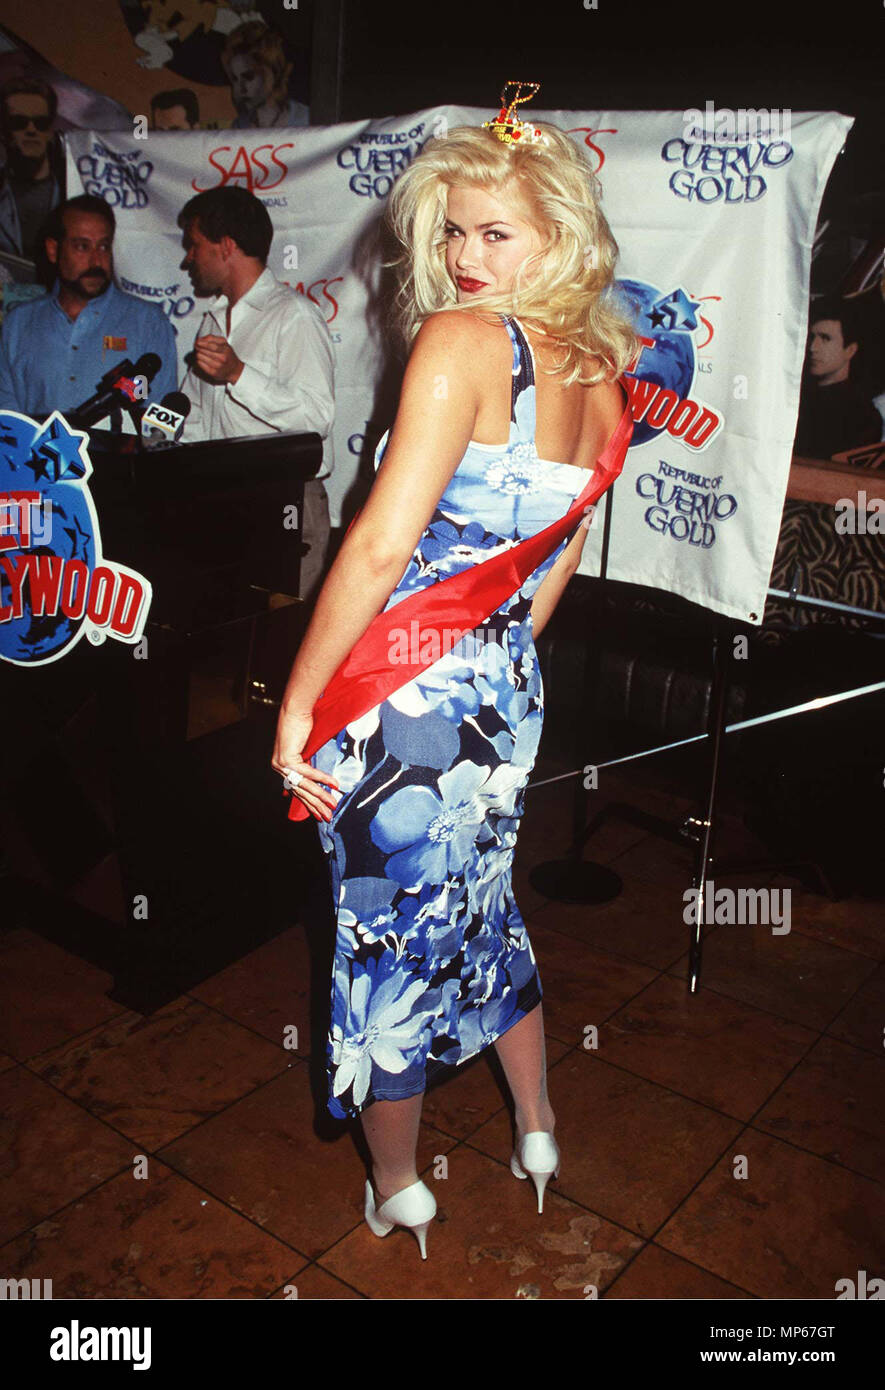 Page 3 Anna Nicole Smith High Resolution Stock Photography And Images Alamy